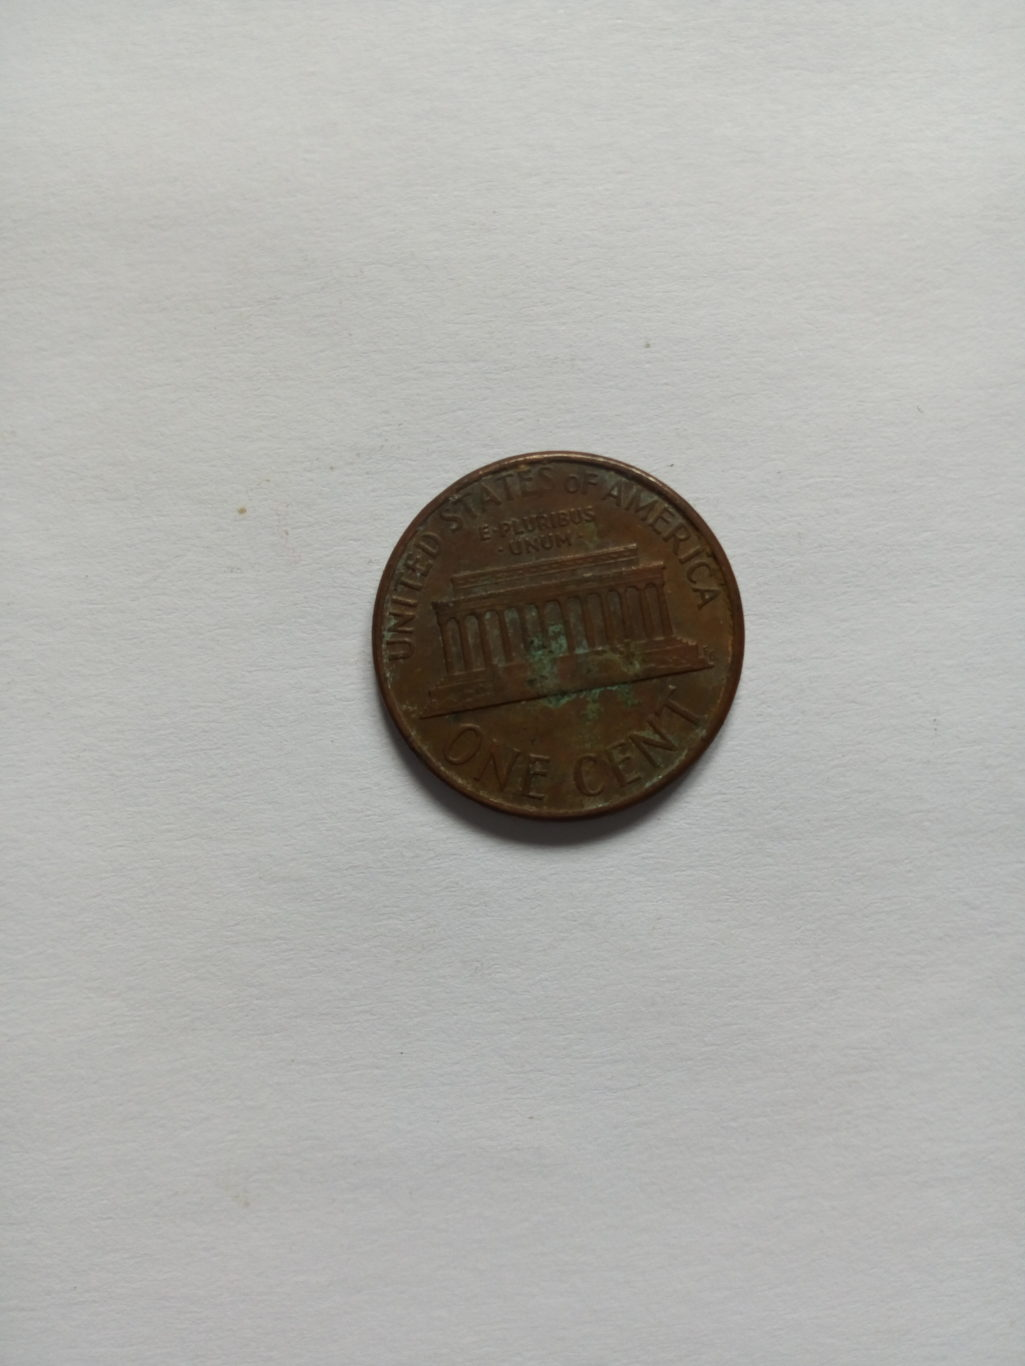 1987_1cent united states of america